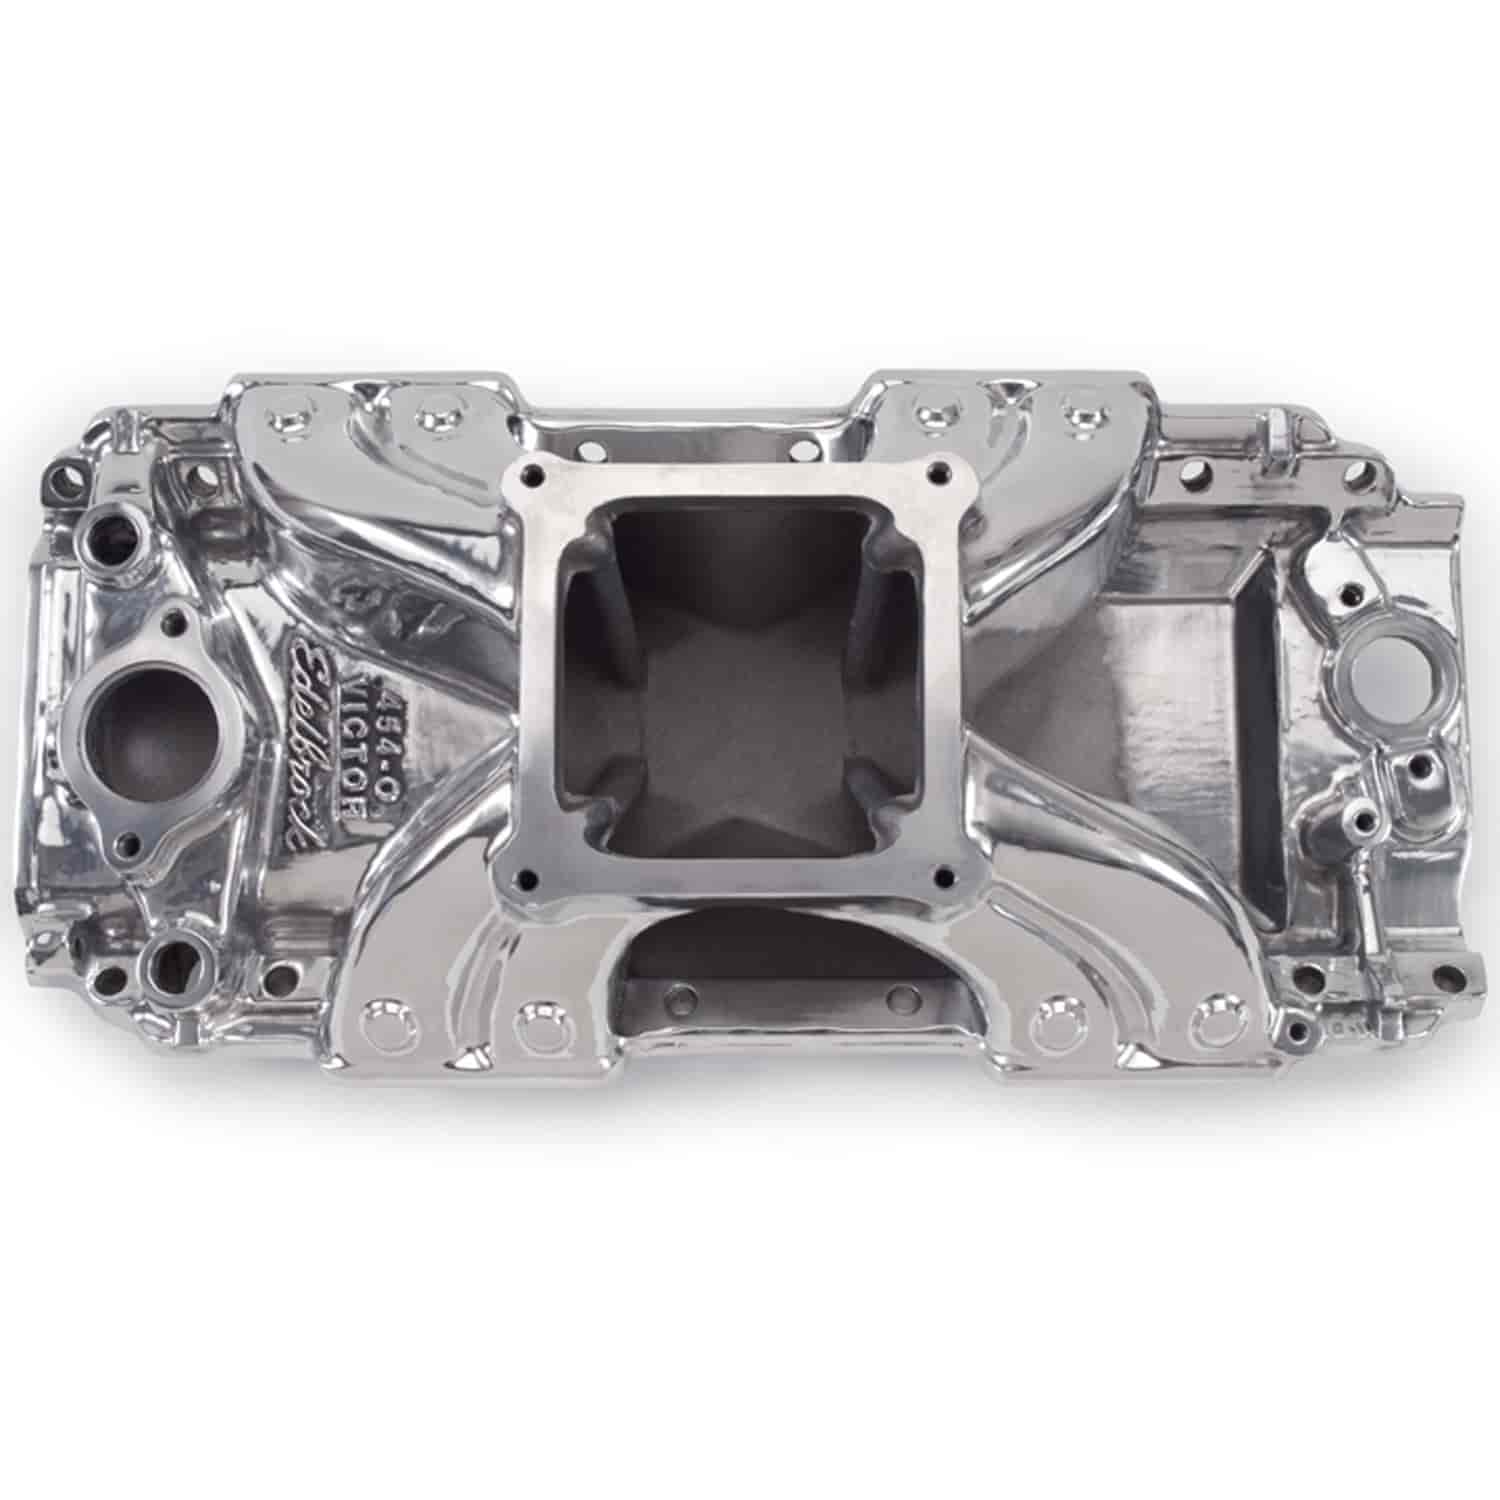 Edelbrock Victor 454-O Intake Manifold Big Block Chevy with 1975-Earlier  large oval port heads